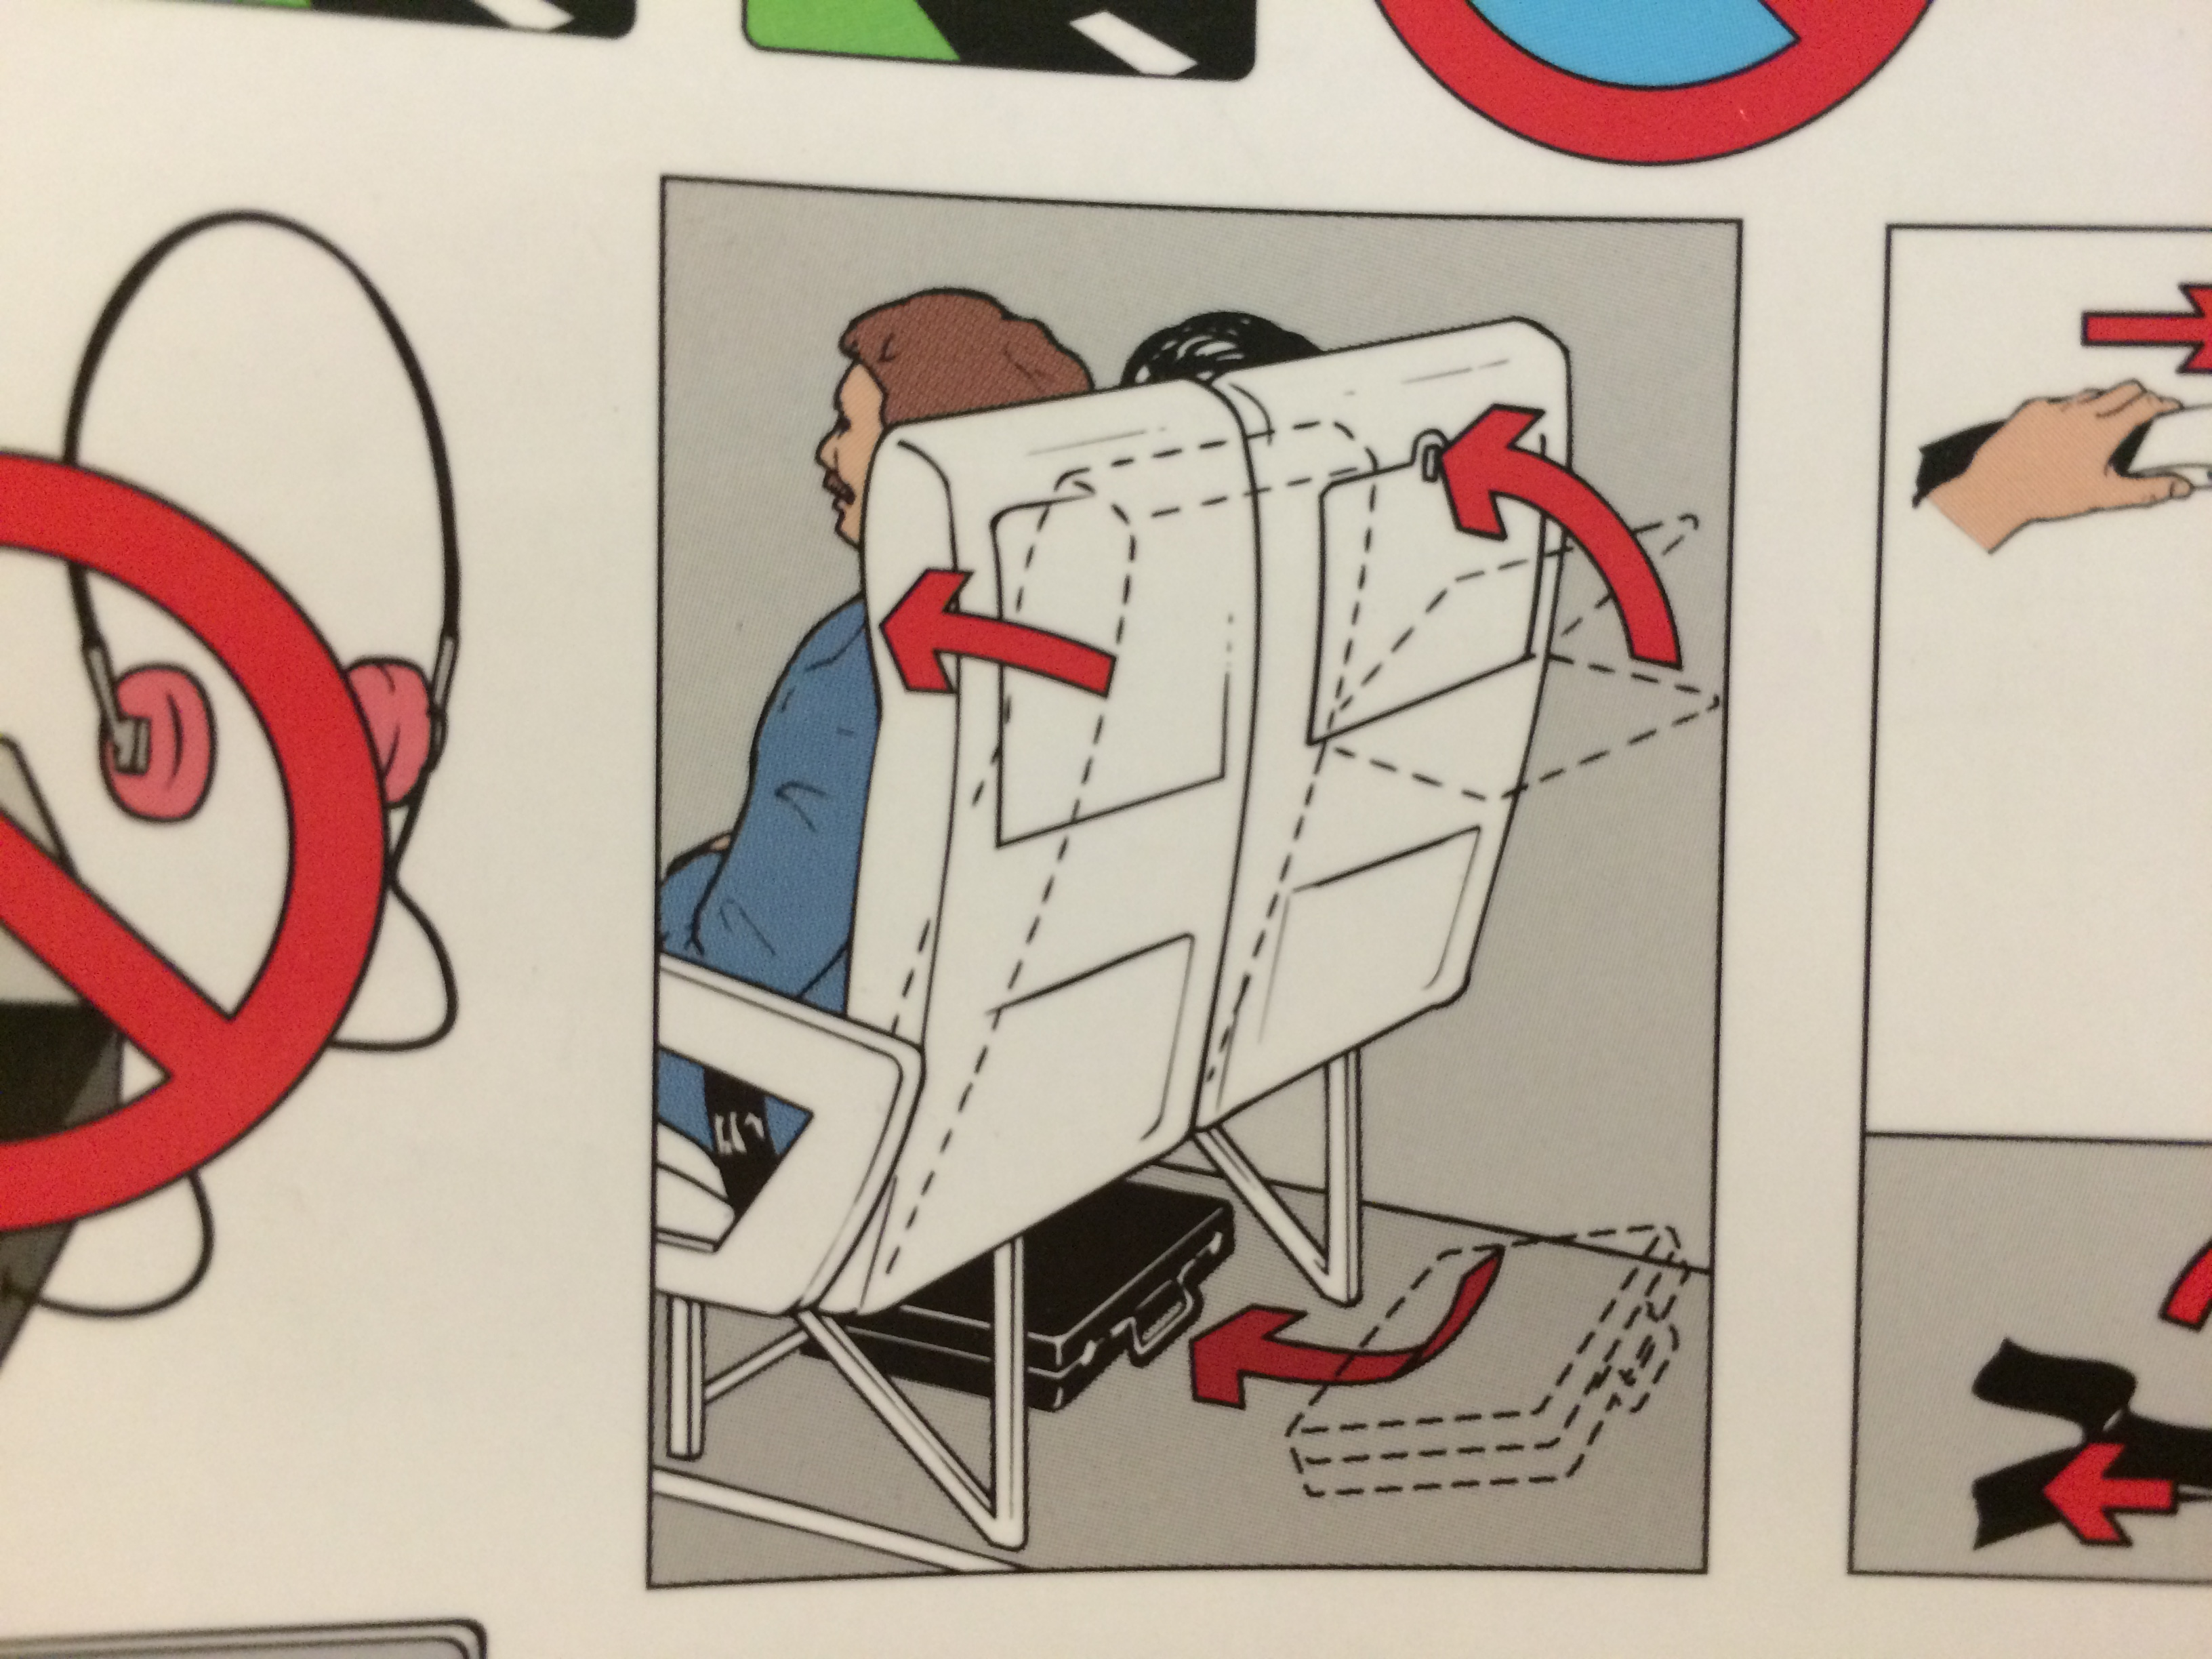 Airplane safety instructions, put seat in upright position